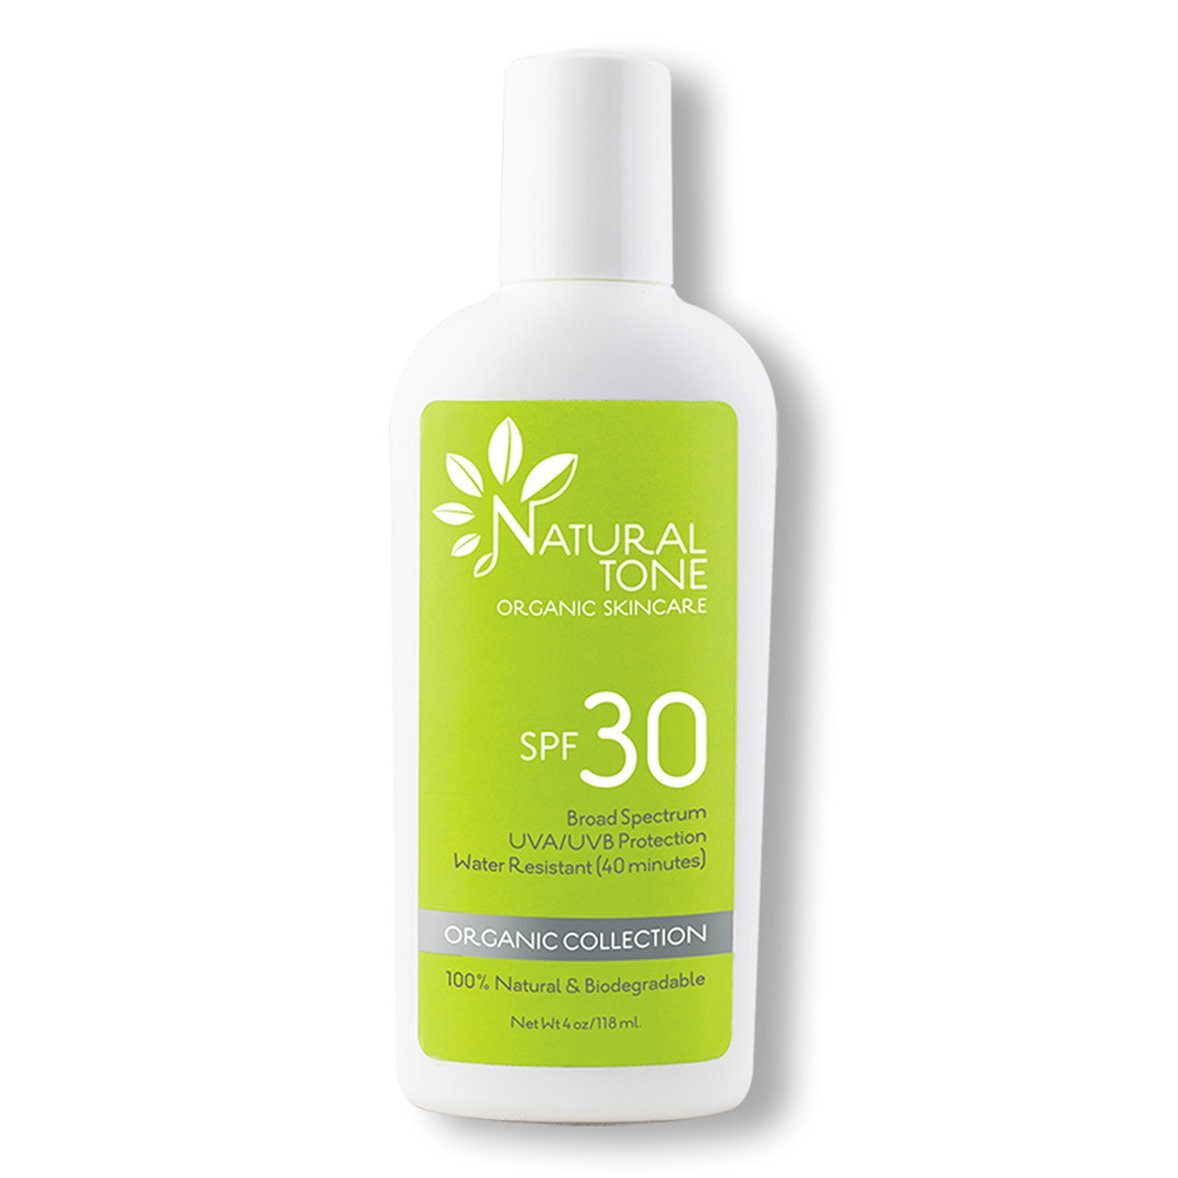 SPF 30 Natural Sunscreen - Natural Tone Organic Skincare